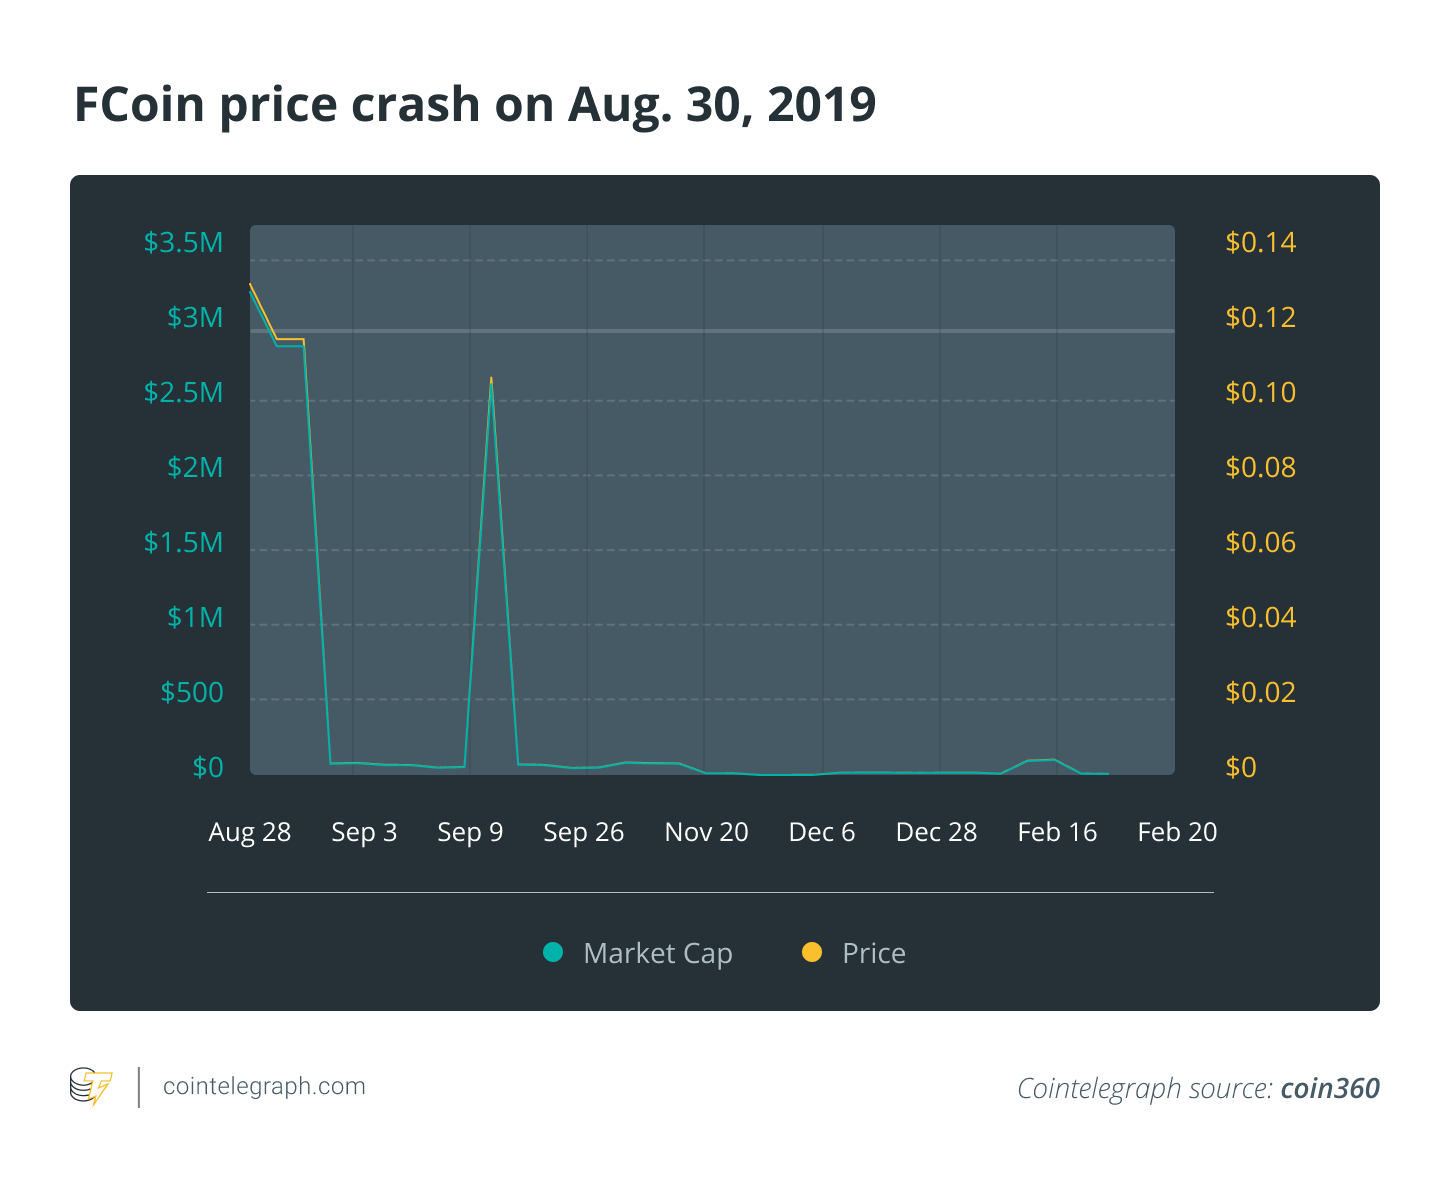 FCoin price crash on Aug. 30, 2019